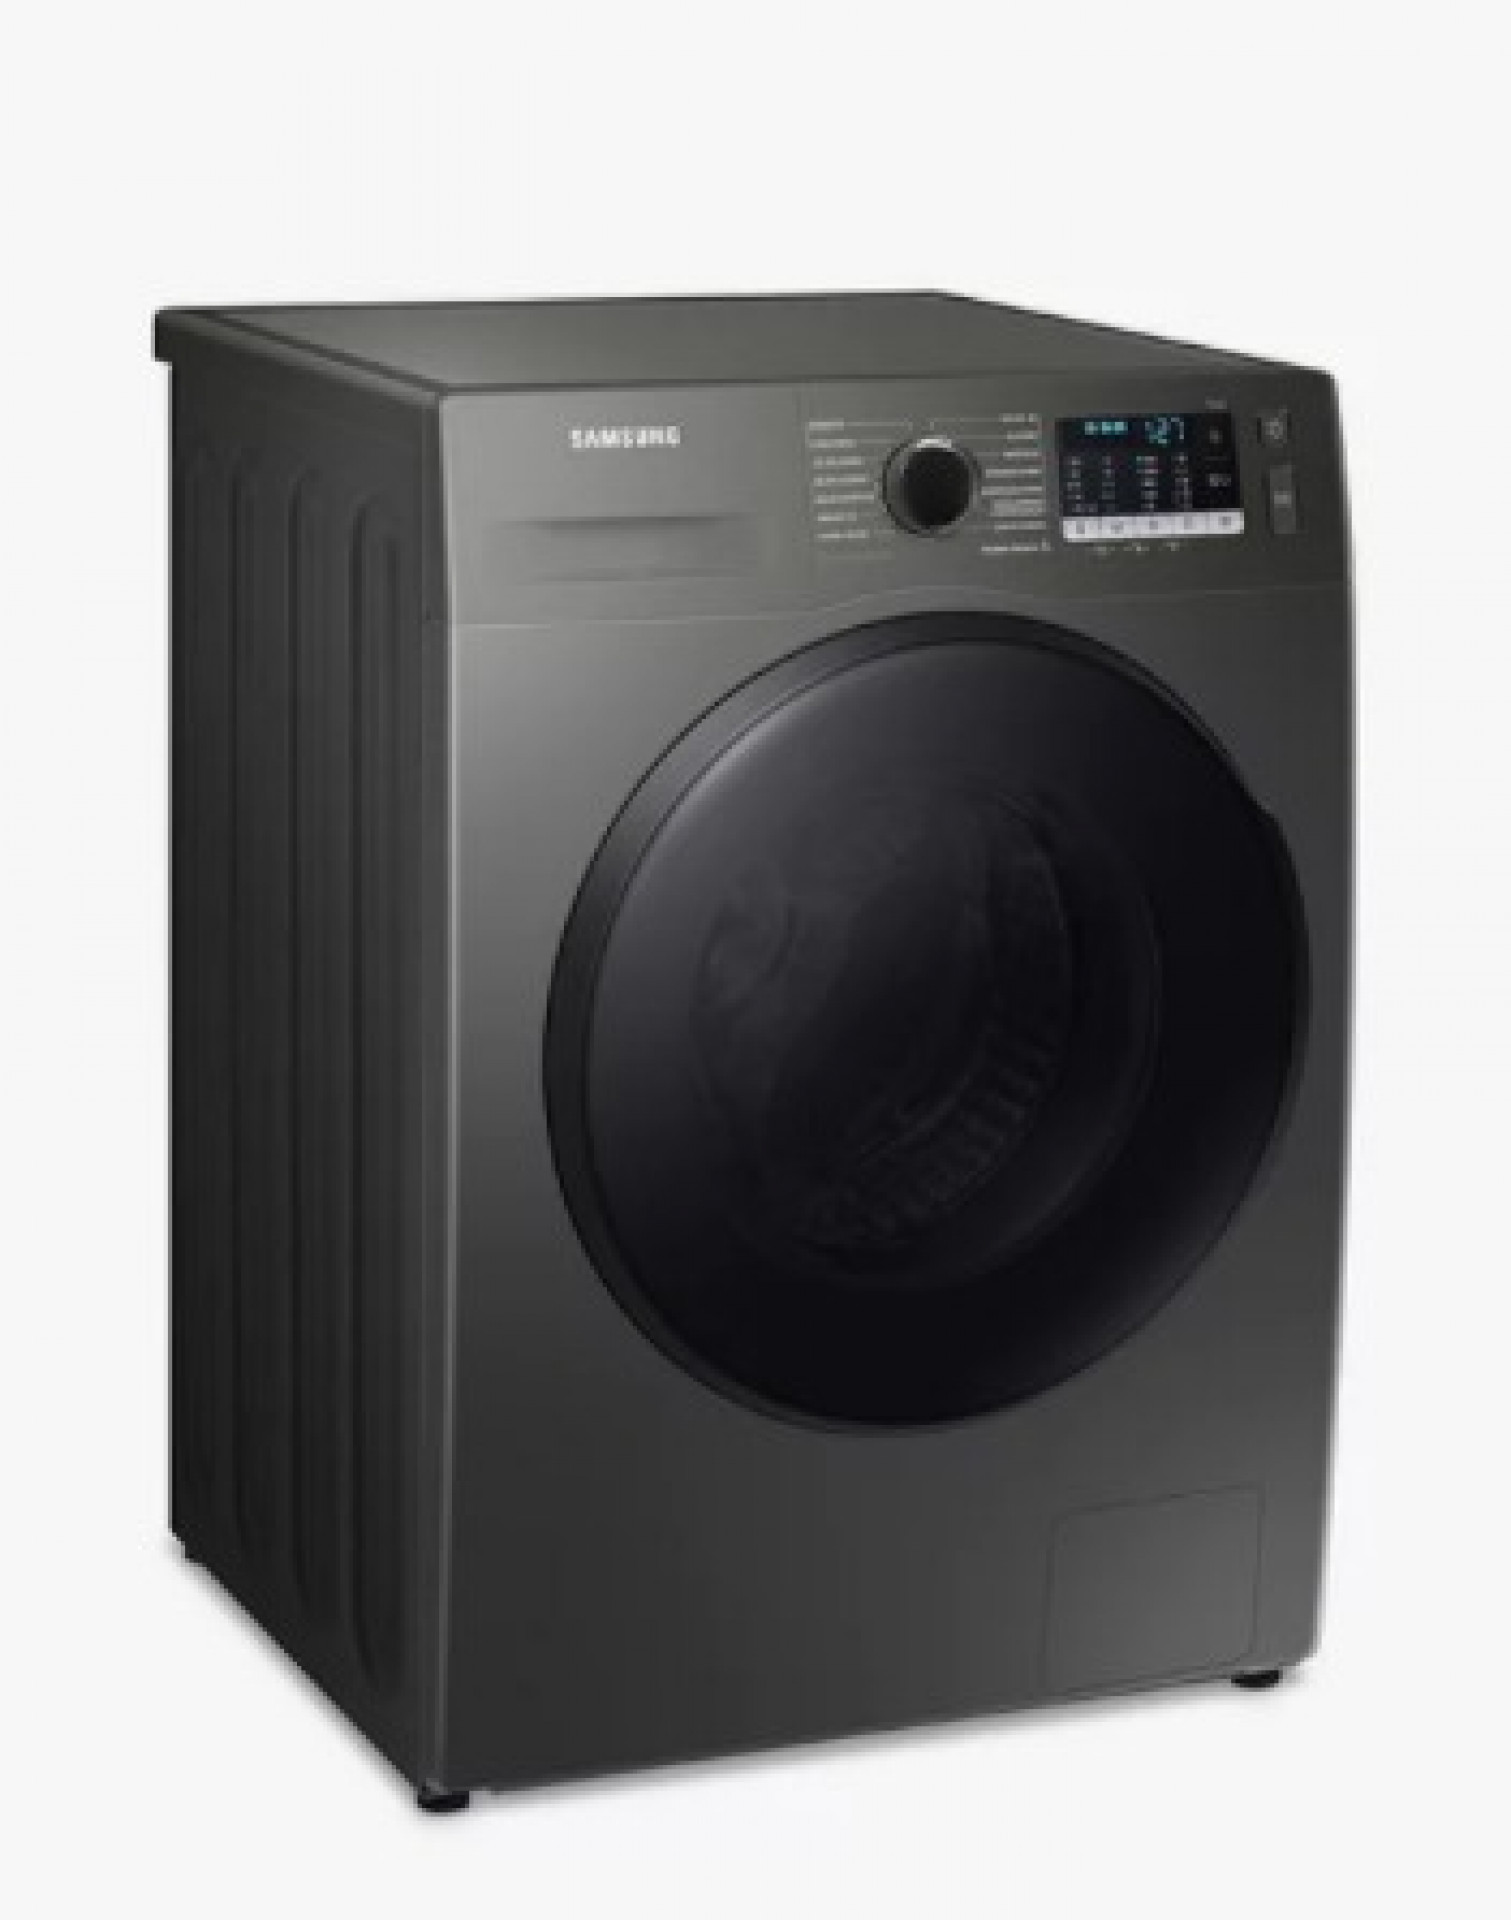 Samsung Series 5 WD90TA046BX Freestanding ecobubble™ Washer Dryer, 9kg/6kg Load, 1400rpm Spin, Graphite